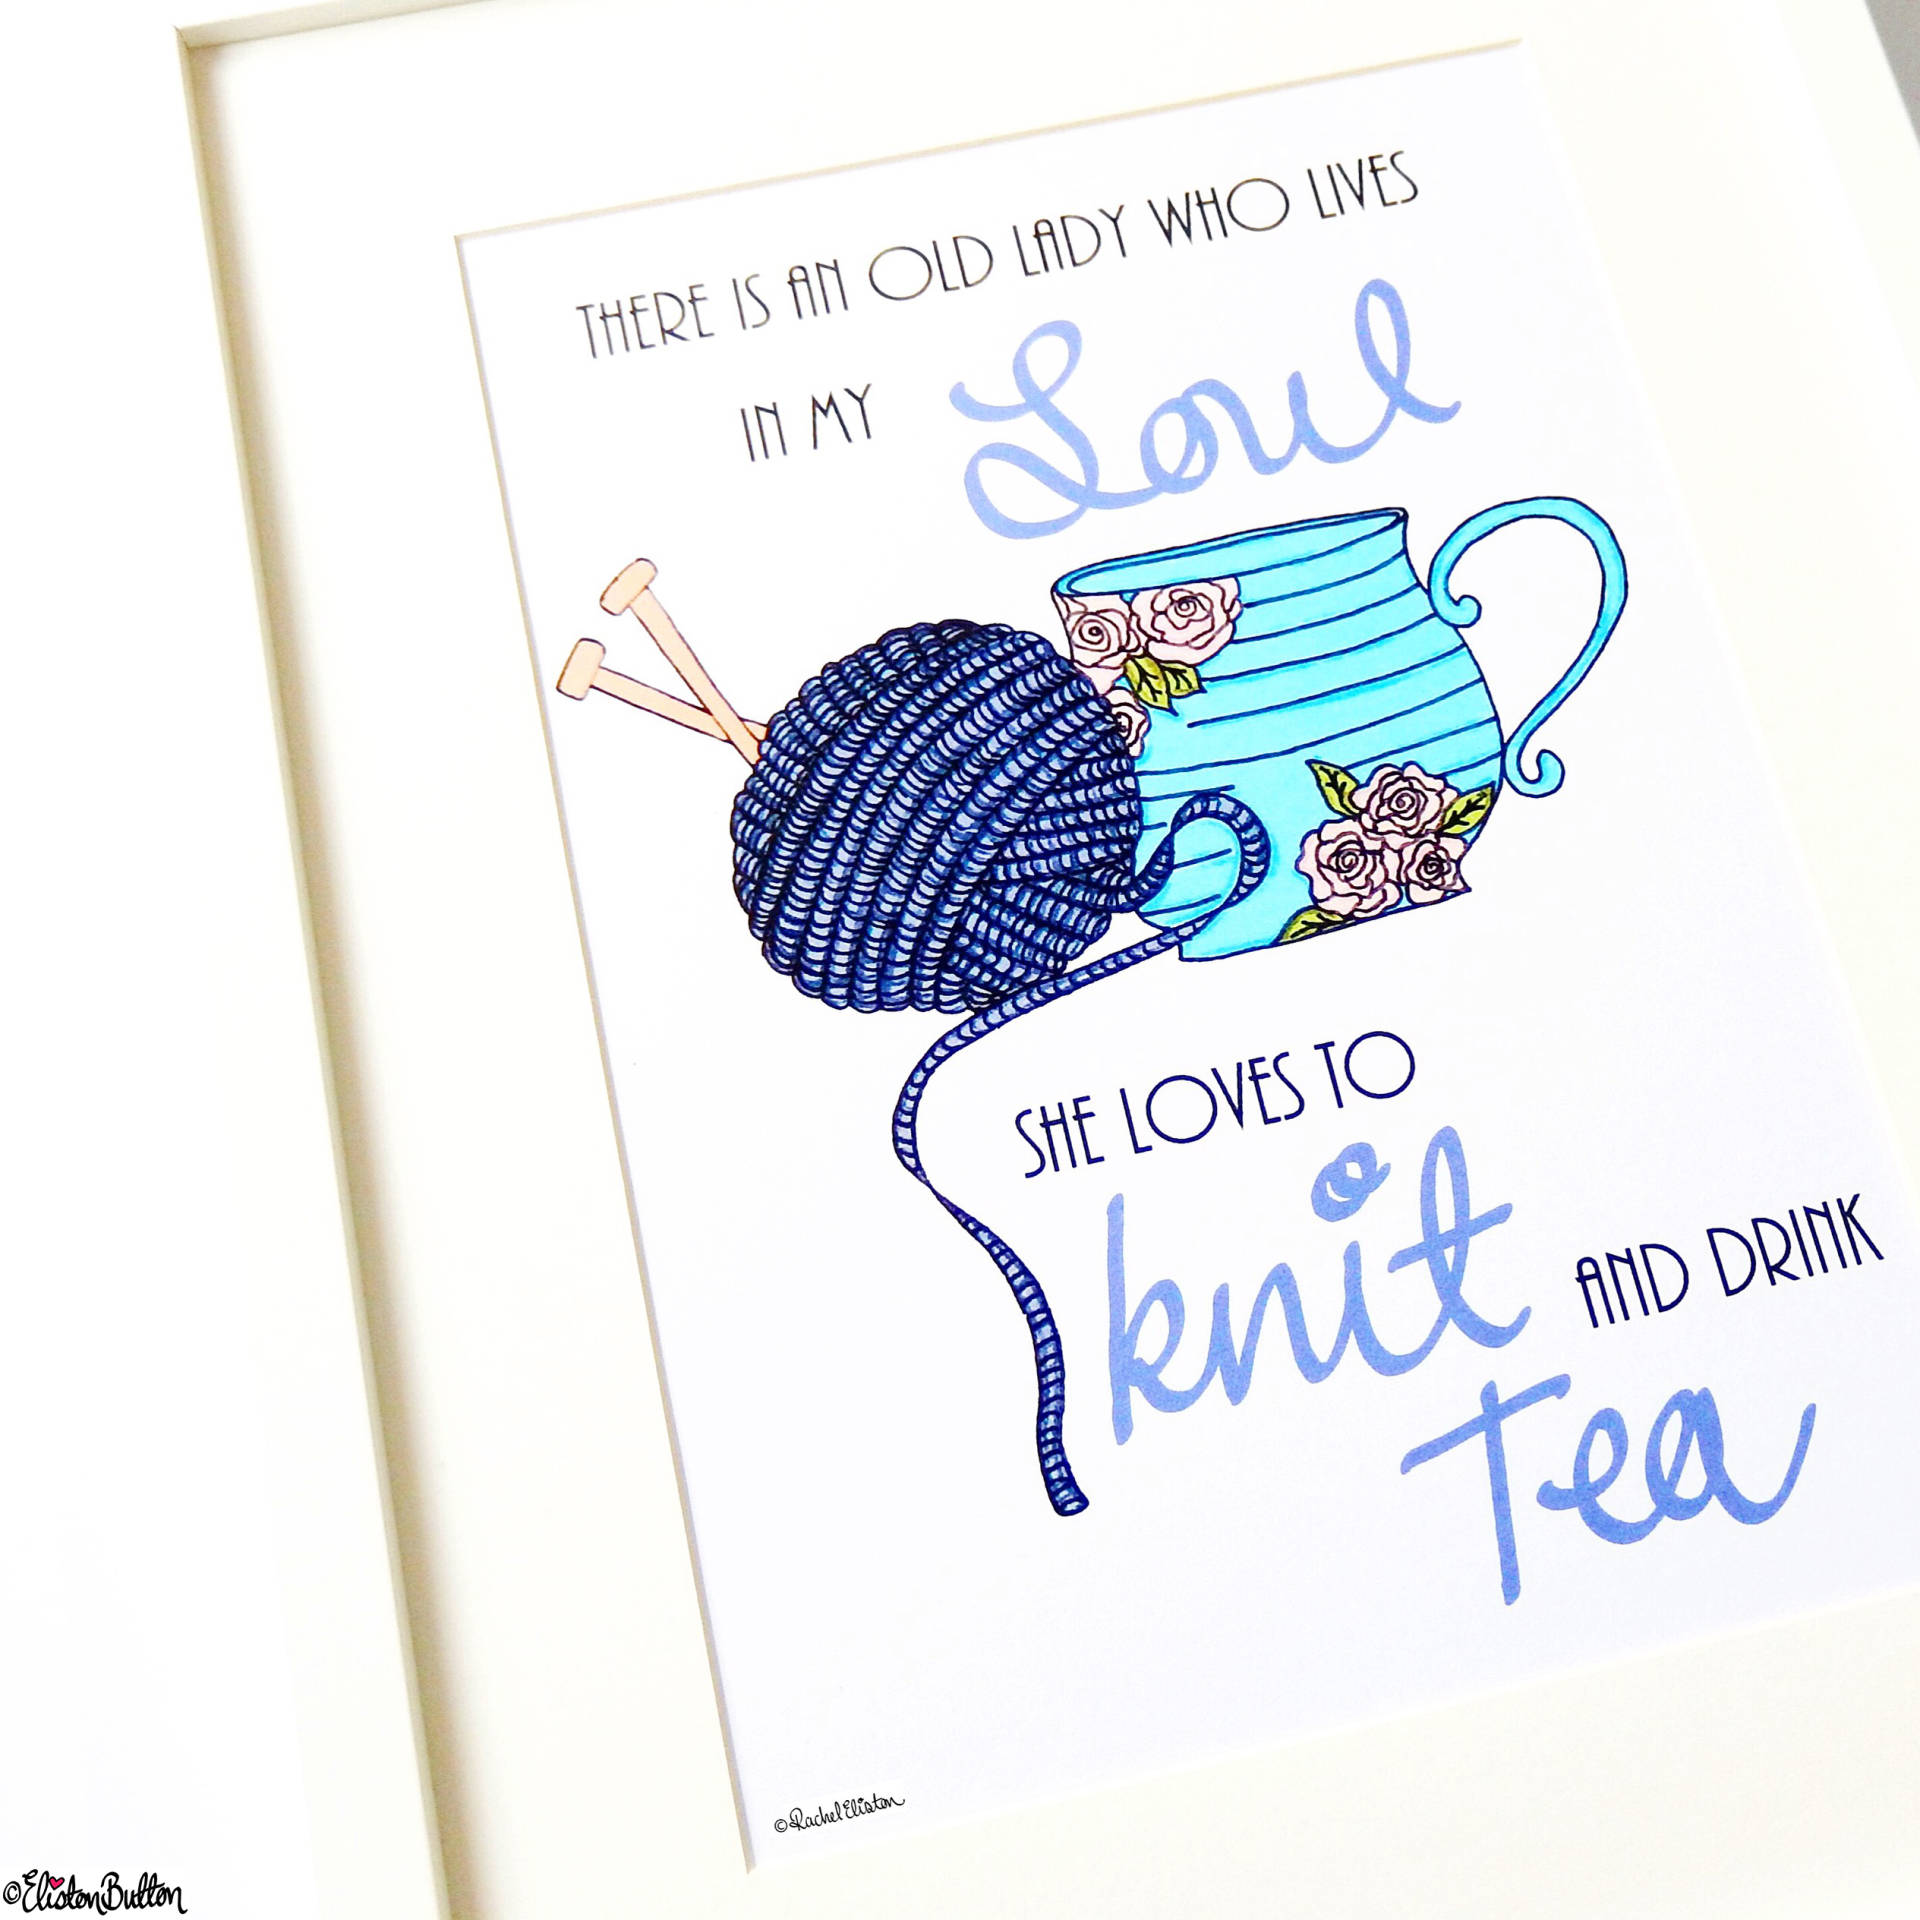 Day 13 - This is Funny - Knit and Drink Tea Typographic Quote Print - Photo-a-Day – March 2016 at www.elistonbutton.com - Eliston Button - That Crafty Kid – Art, Design, Craft & Adventure.